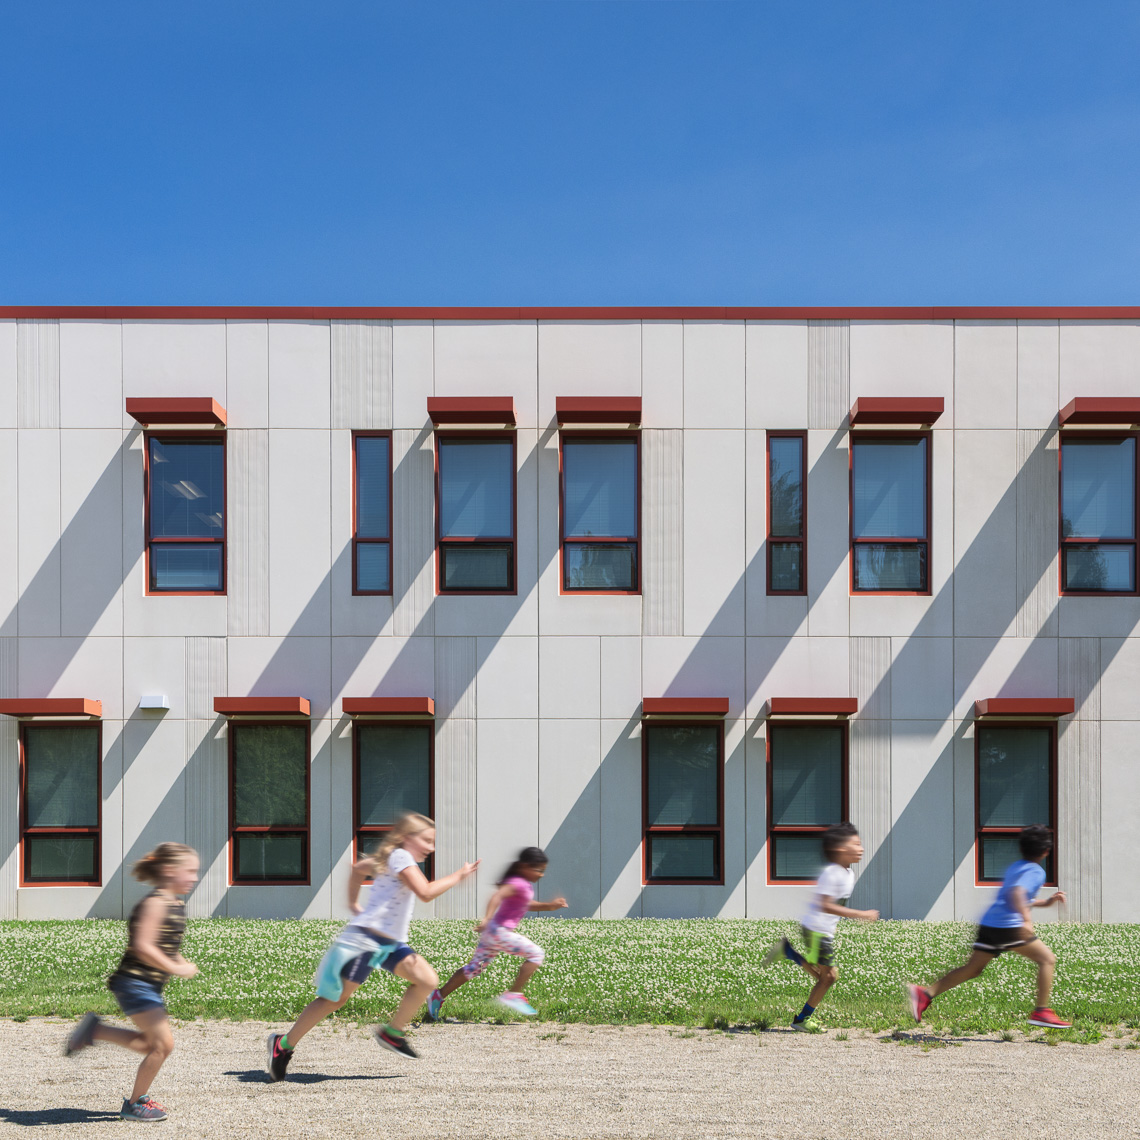 Columbus Spanish Immersion Academy by Design Group photographed by Brad Feinknopf based in Columbus, Ohio